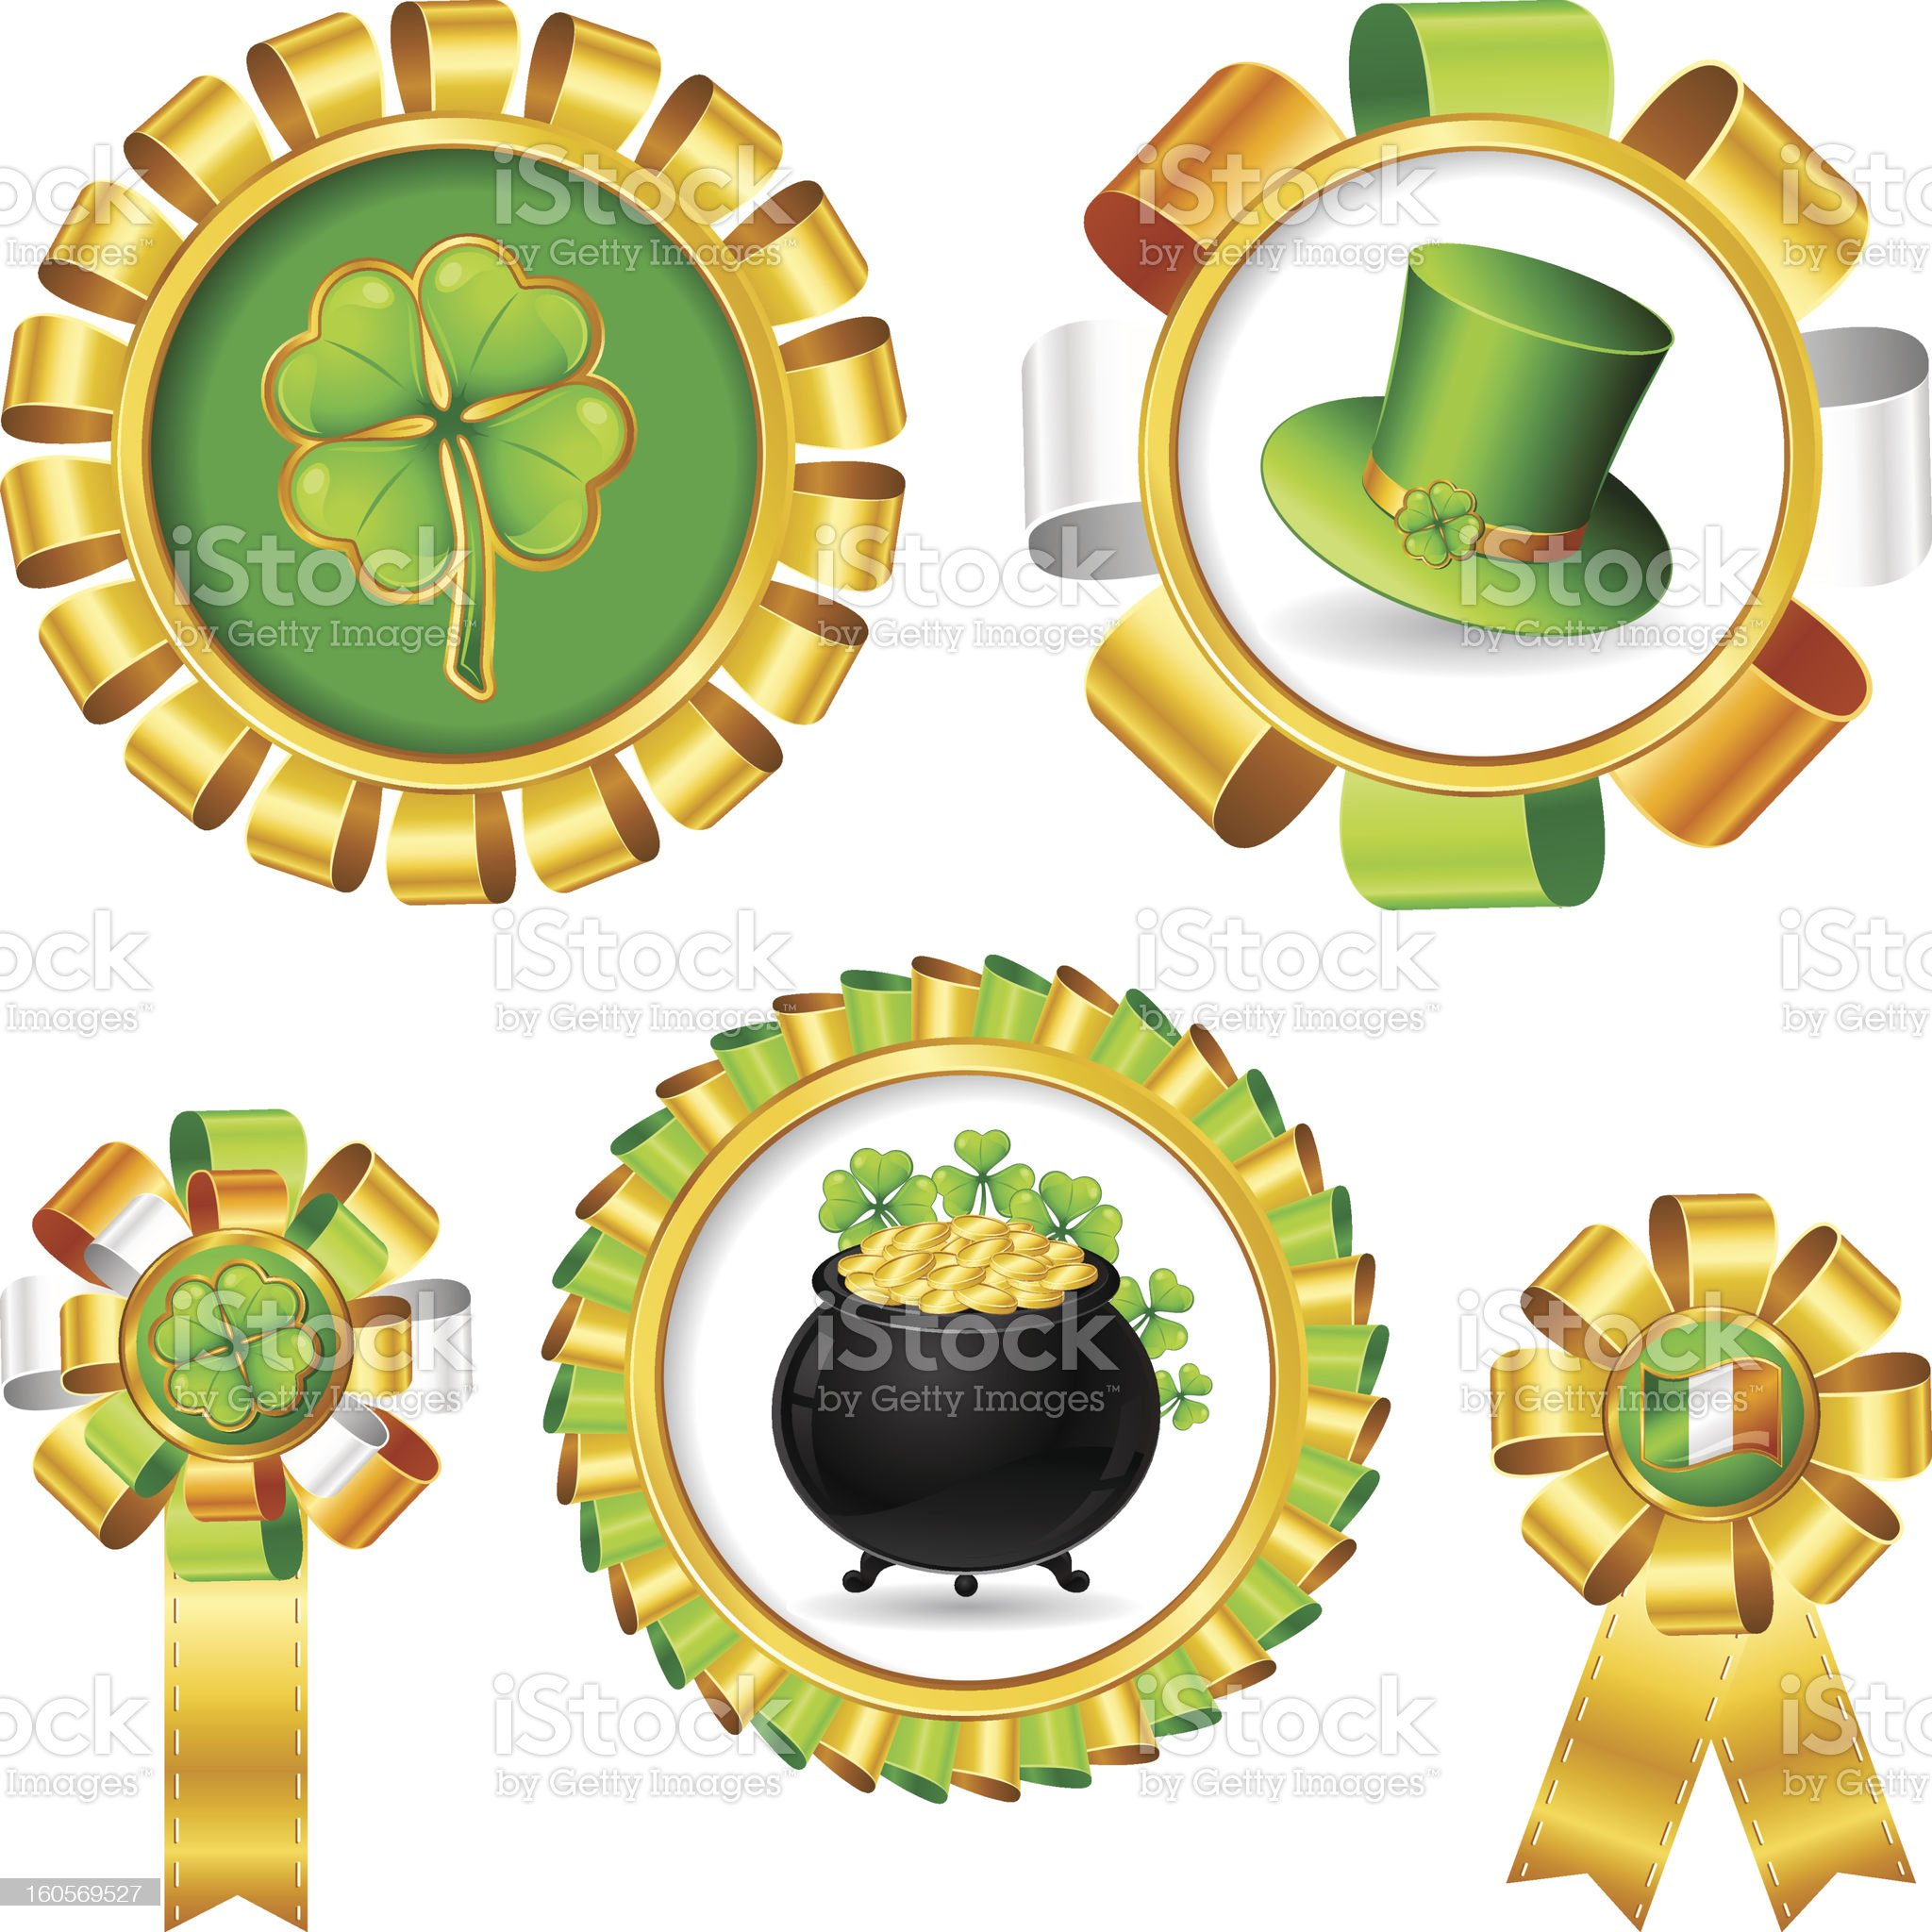 Award ribbons with Saint Patrick's day objects. royalty-free stock photo